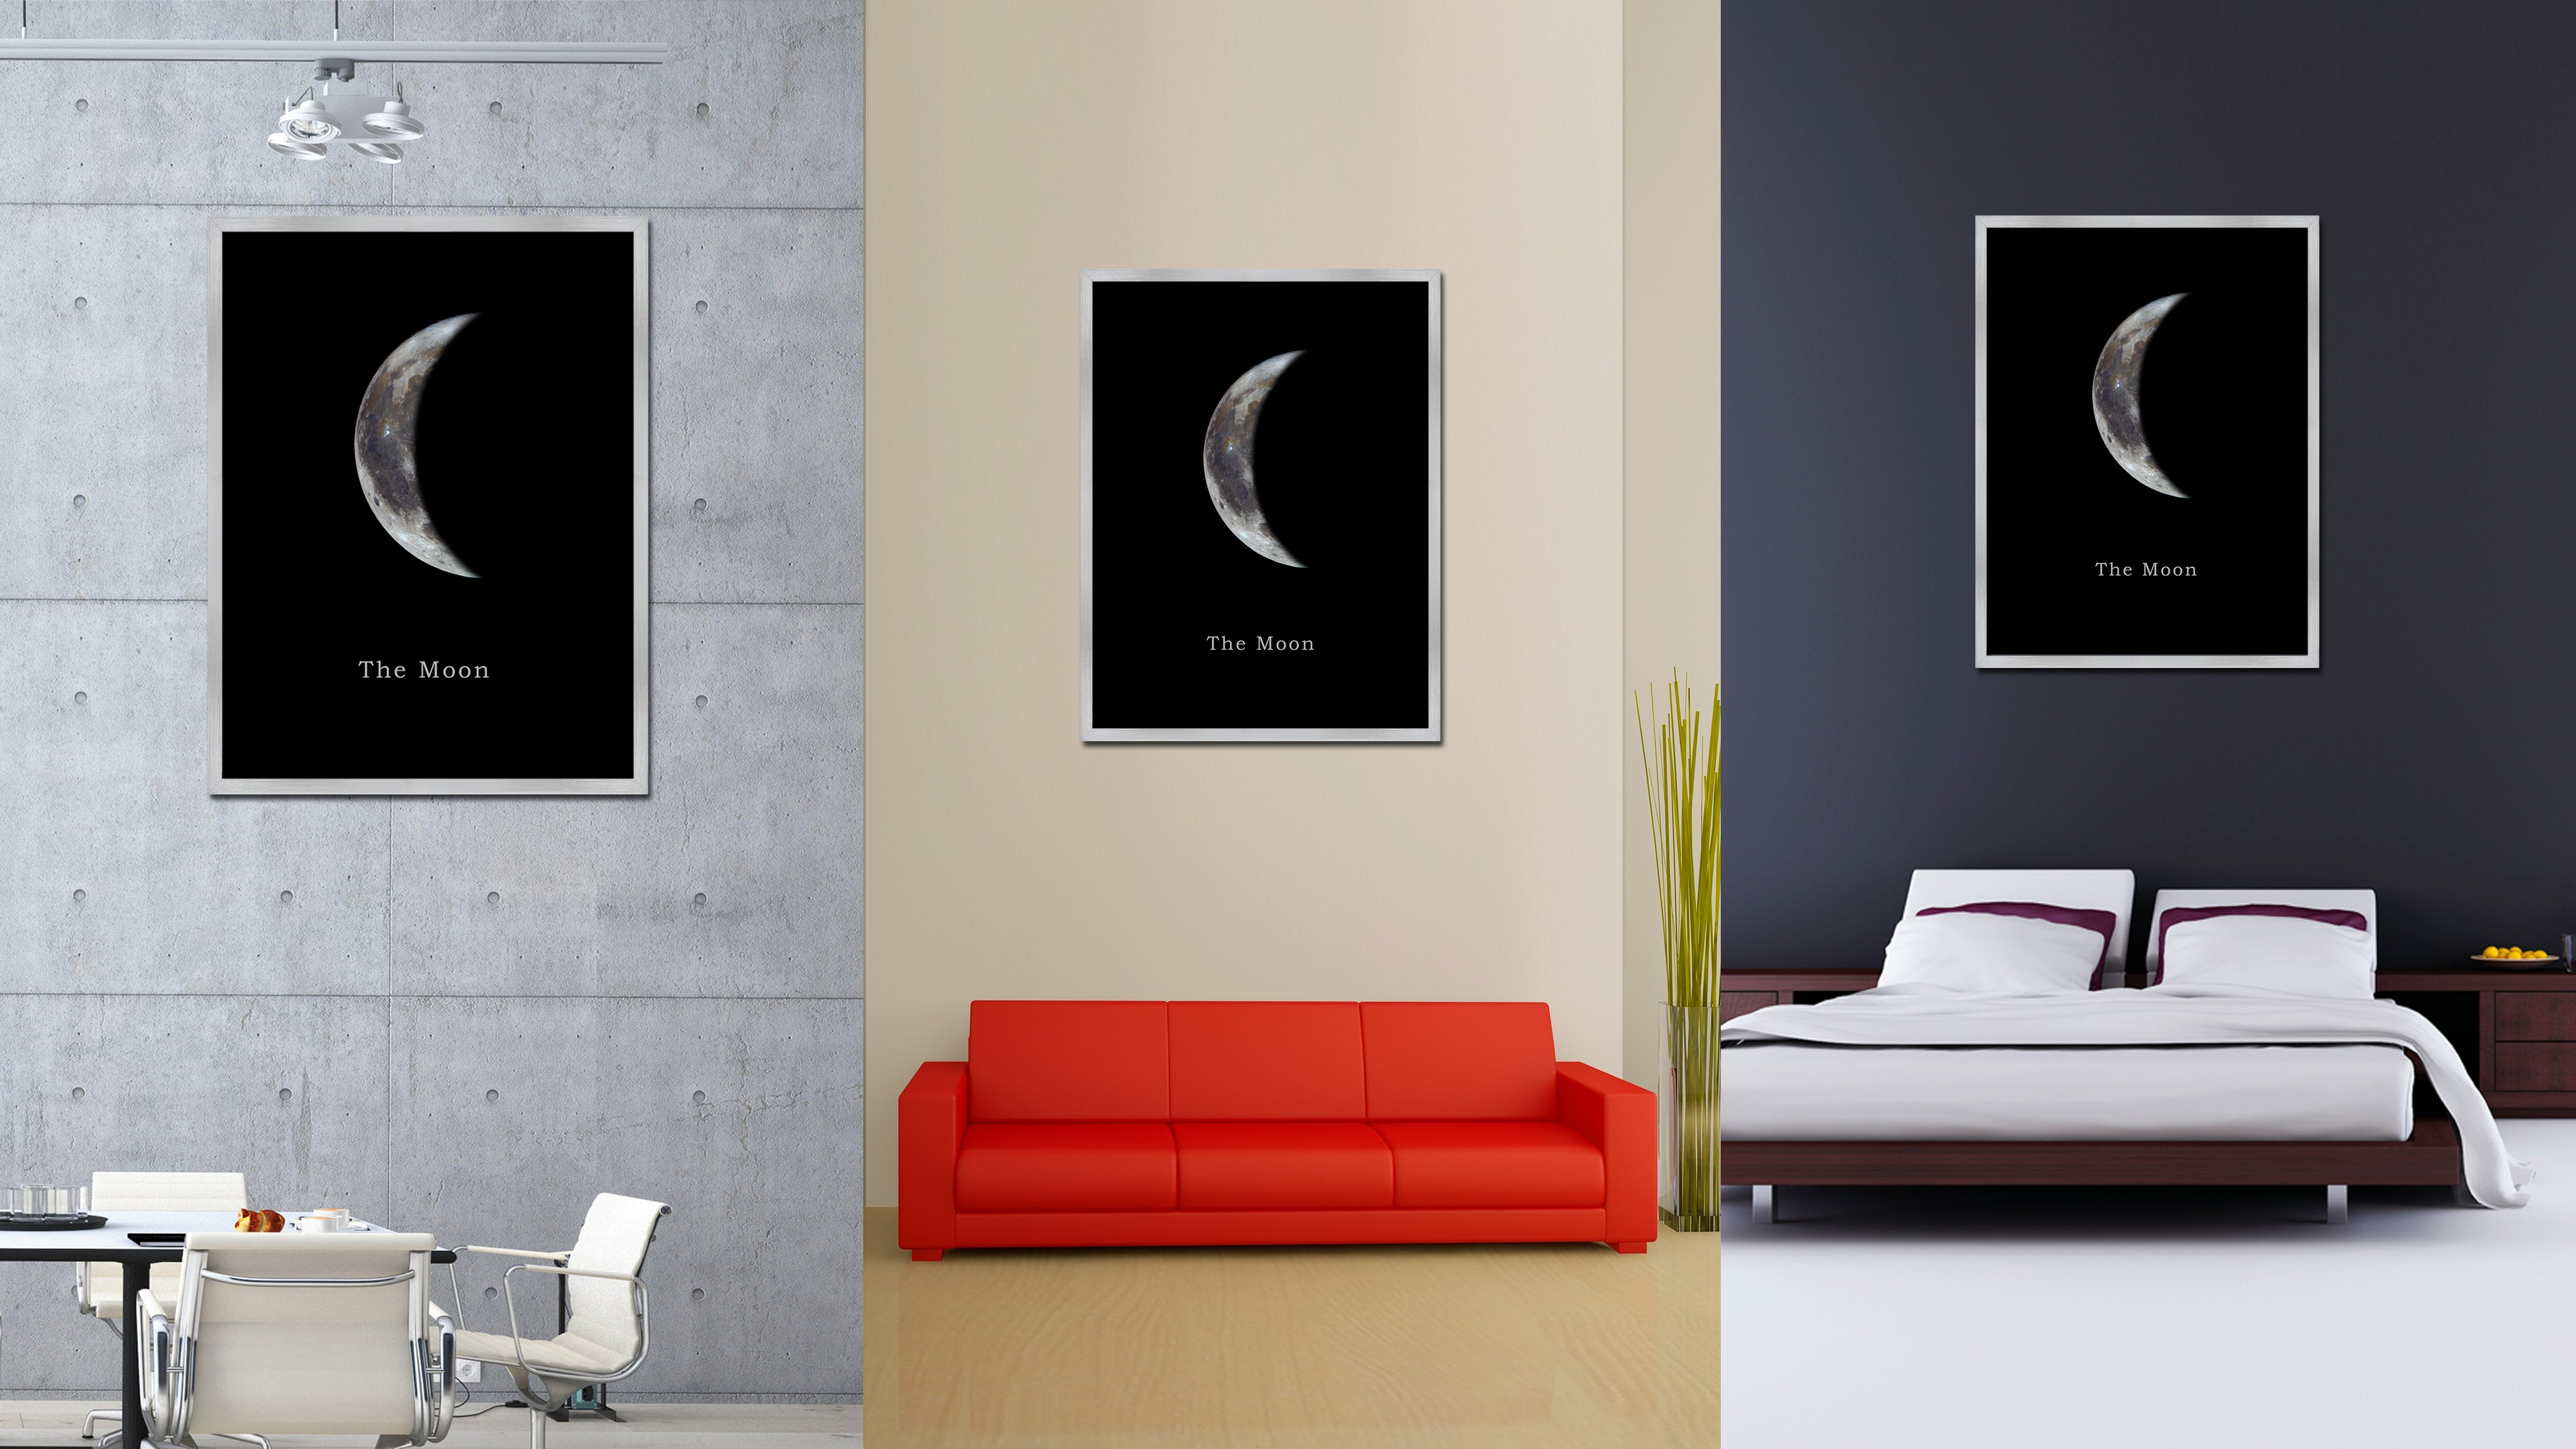 Crescent Moon Crescent Moon Print on Canvas Silver Custom Framed Art Home Decor Wall Offec Decoration